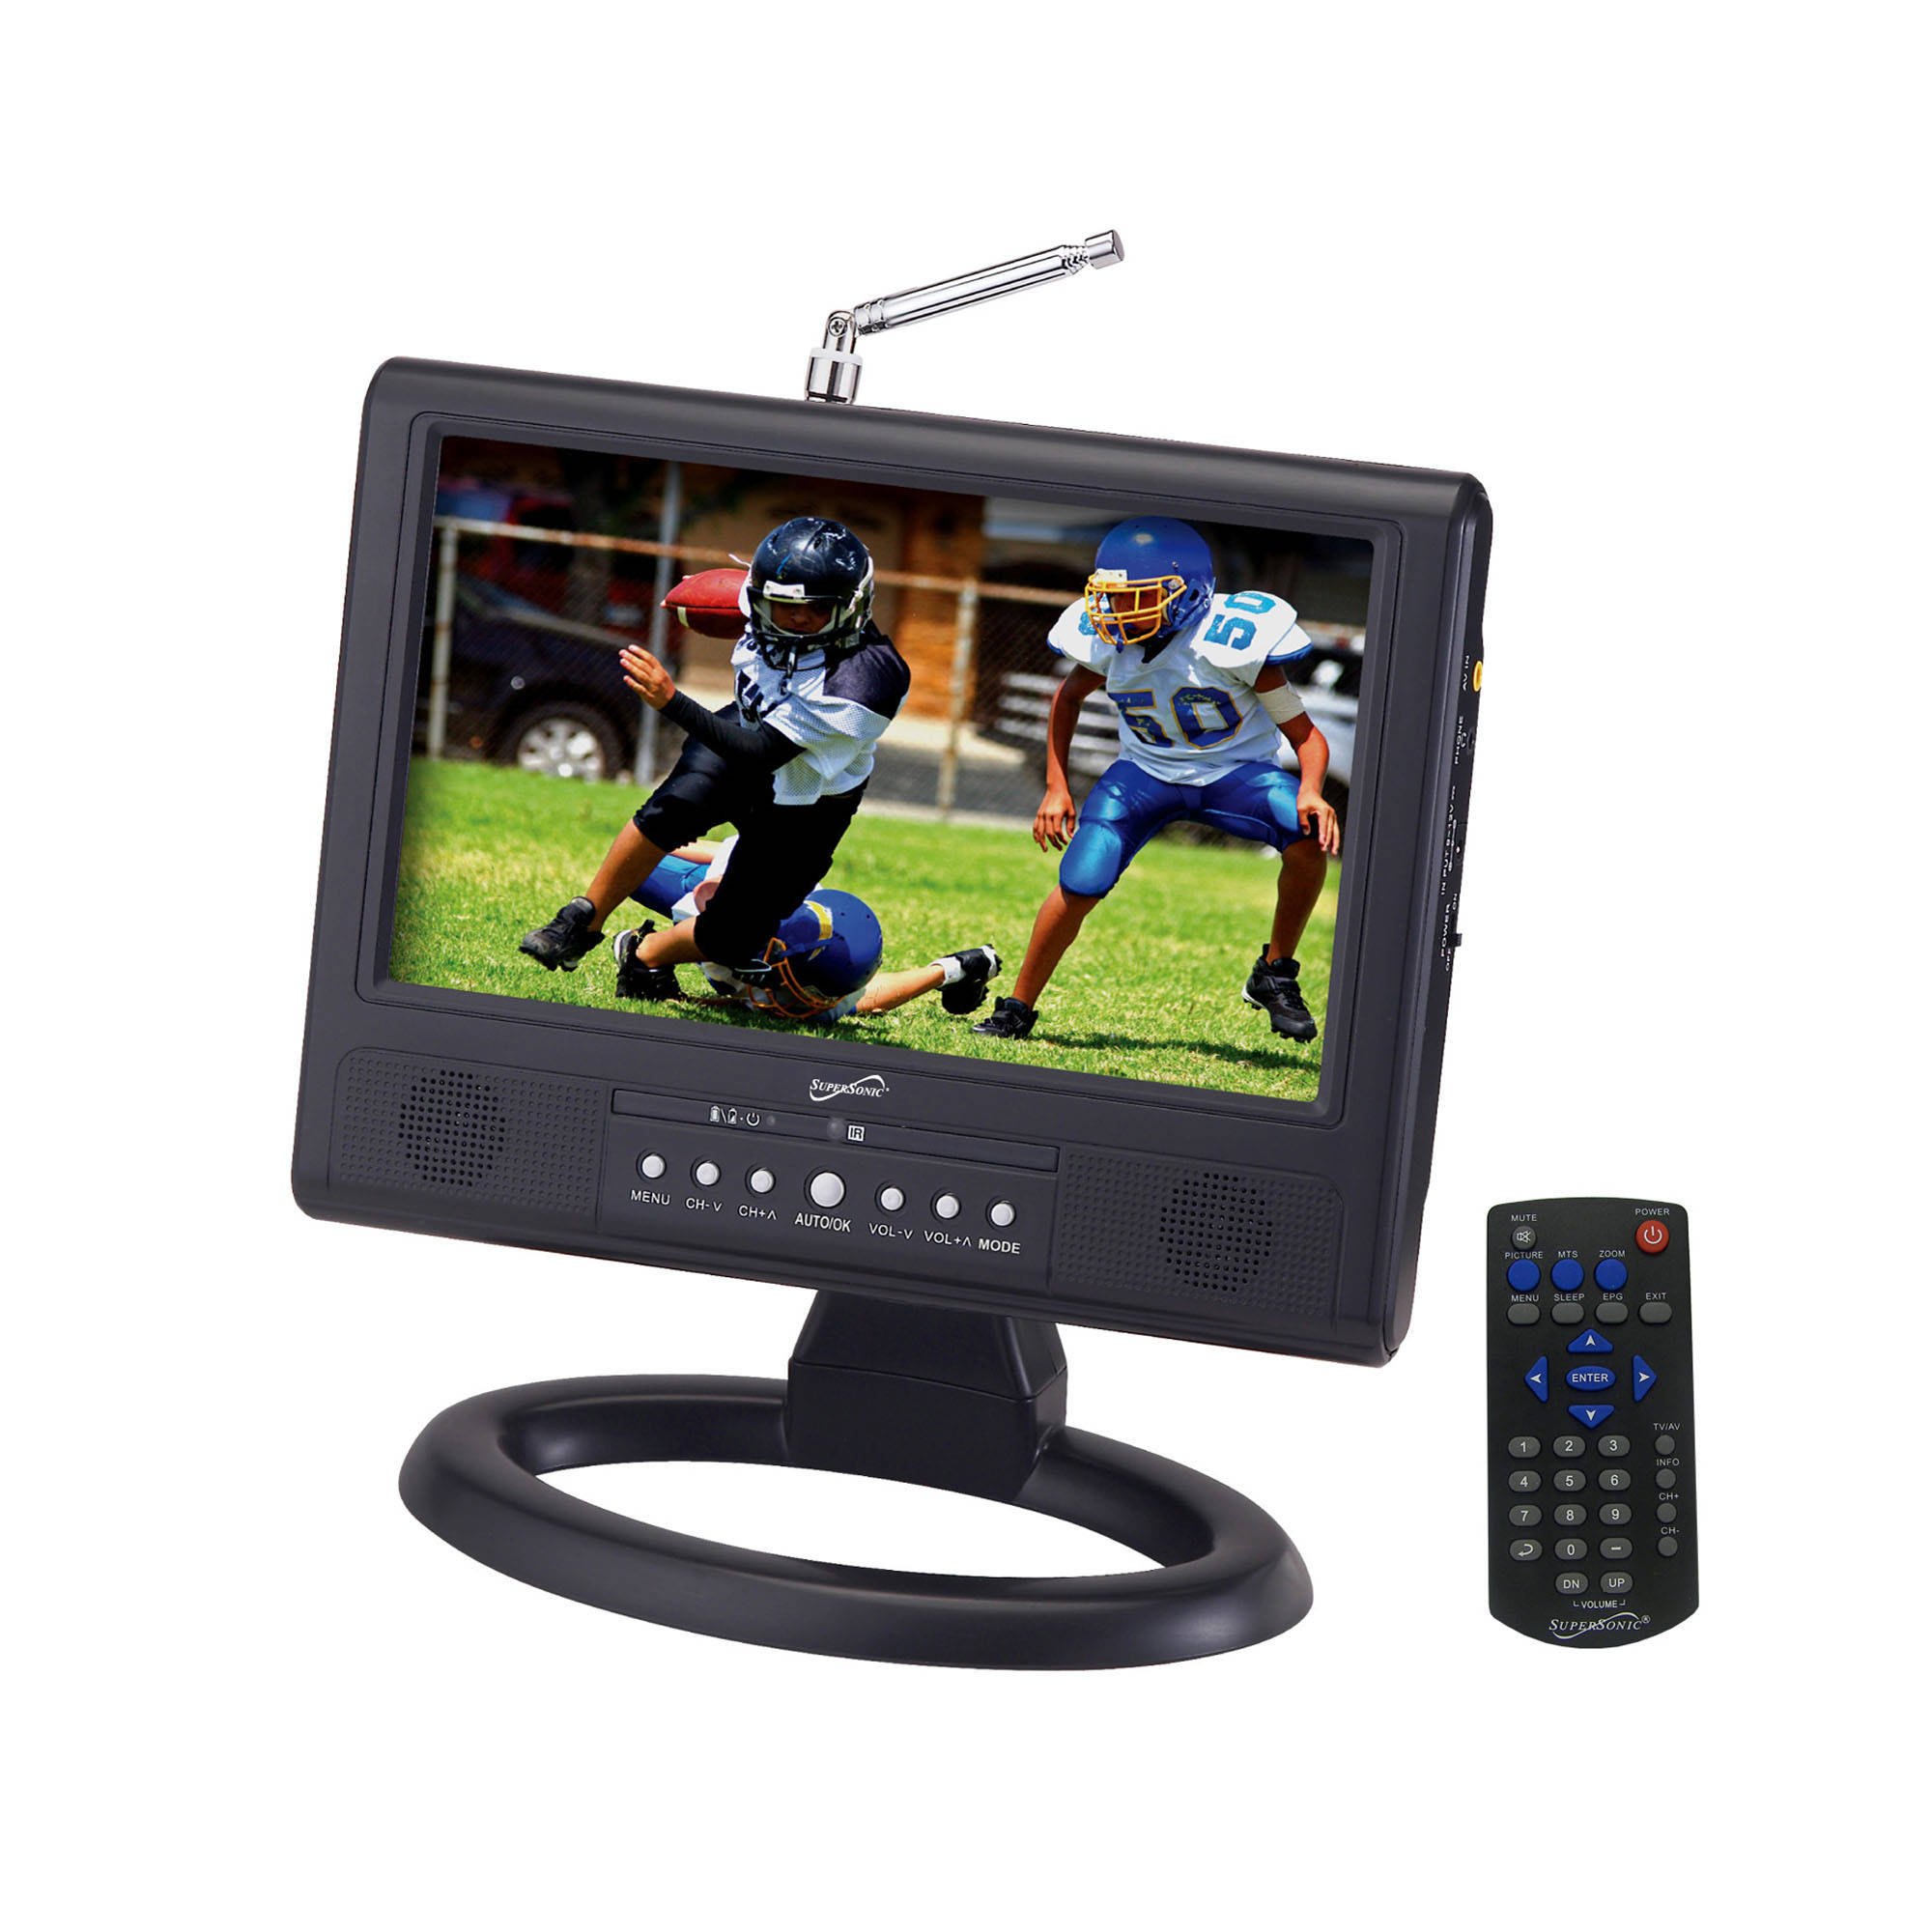 Supersonic Sc 499d 9 Portable Digital Lcd Tv Bh Nokia 6610 Interface With At89c51